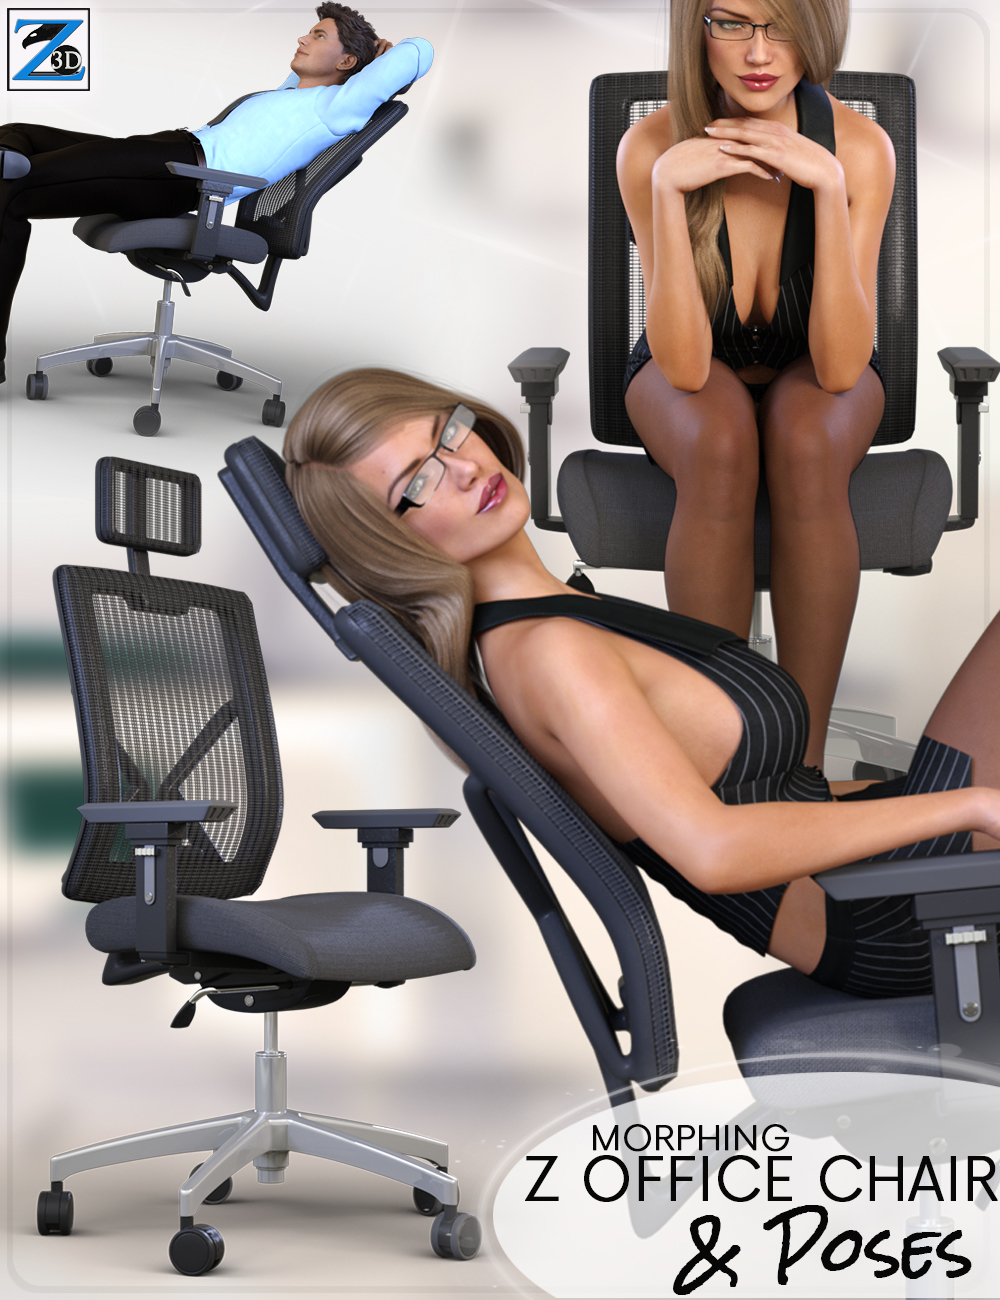 Z Morphing Office Chair & Poses by: Zeddicuss, 3D Models by Daz 3D